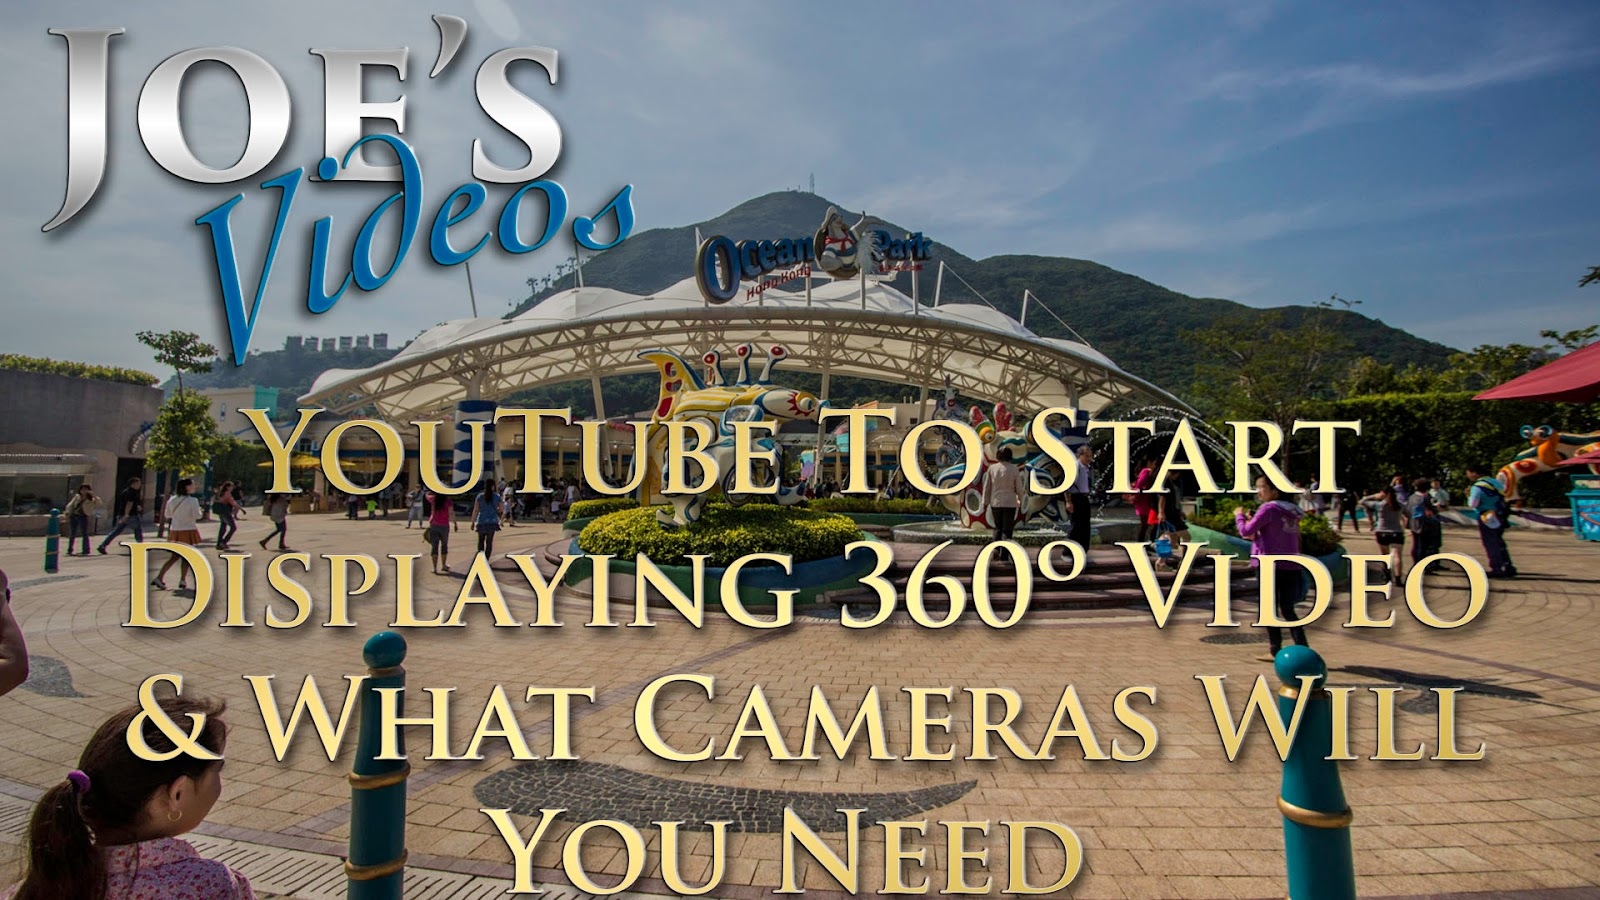 YouTube To Start Displaying 360 Degree Video & What Cameras Will You Need